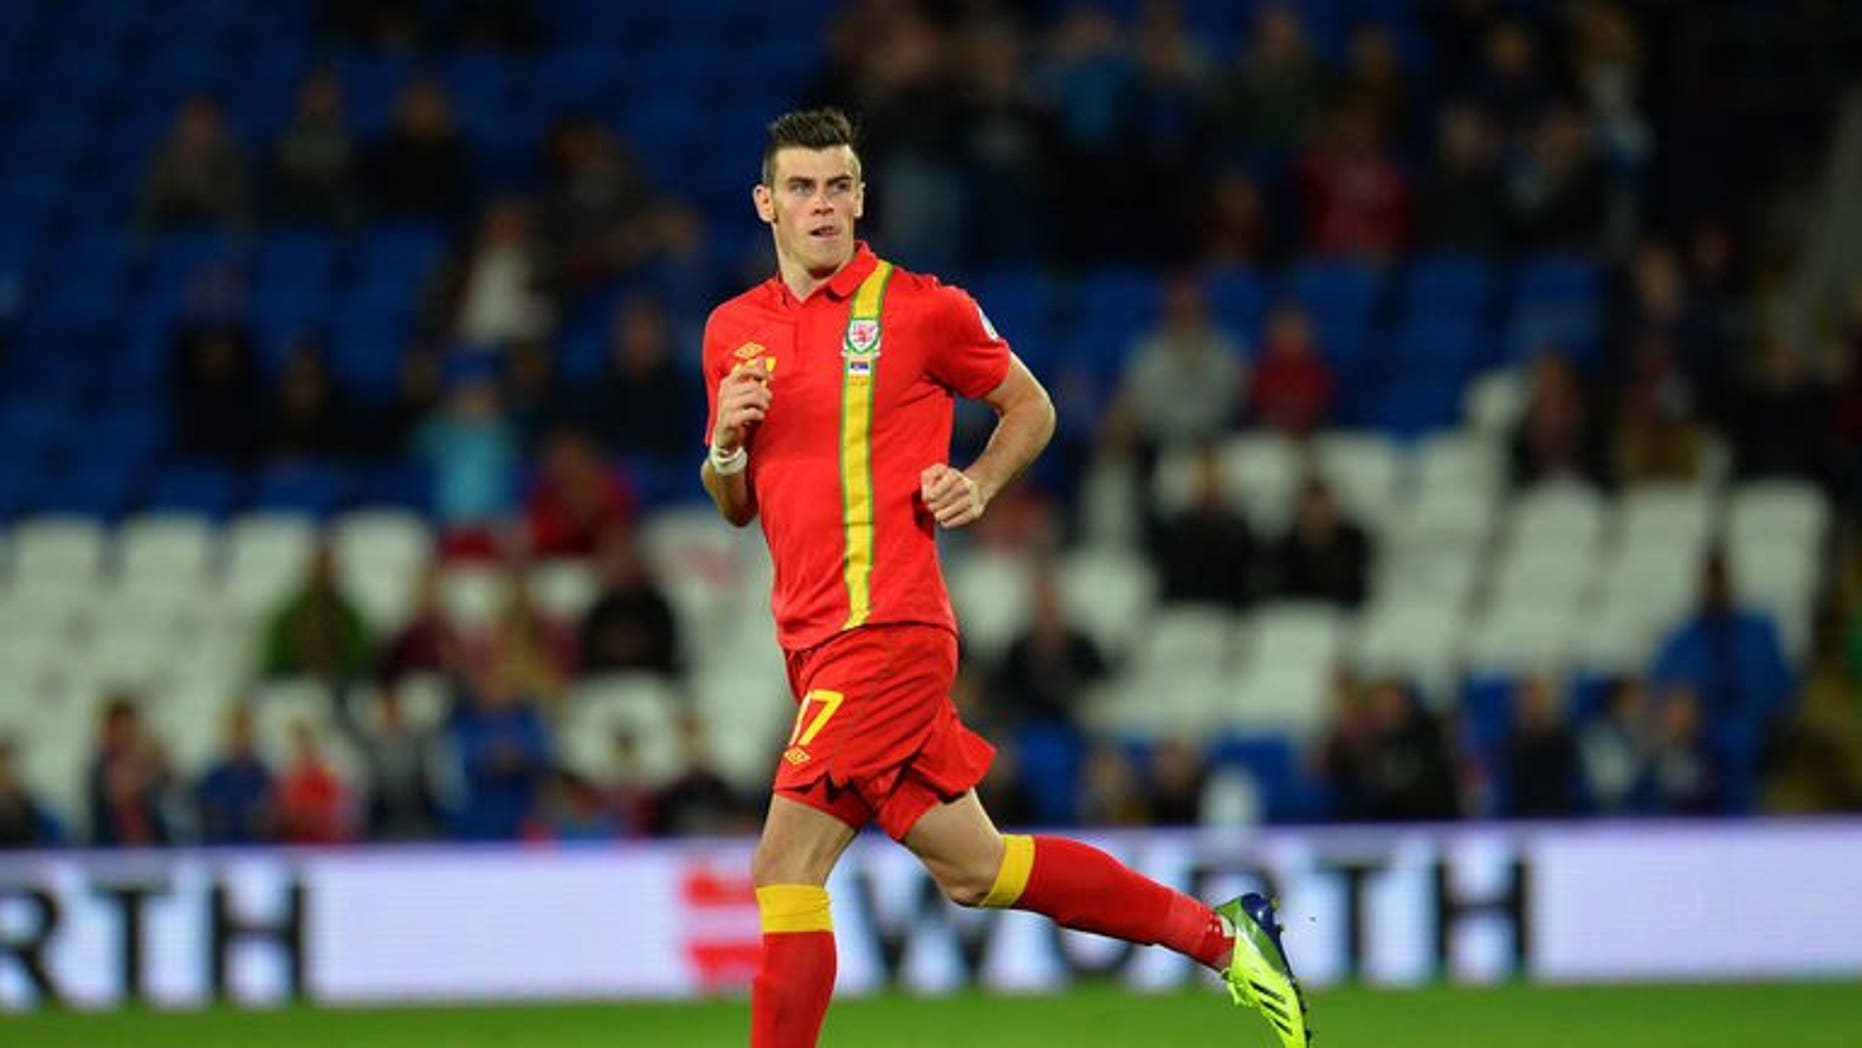 Wales' Gareth Bale comes on as a substitute during the World Cup 2014 European Zone group A qualifying football match between Wales and Serbia at Cardiff City Stadium in south Wales, on September 10, 2013.